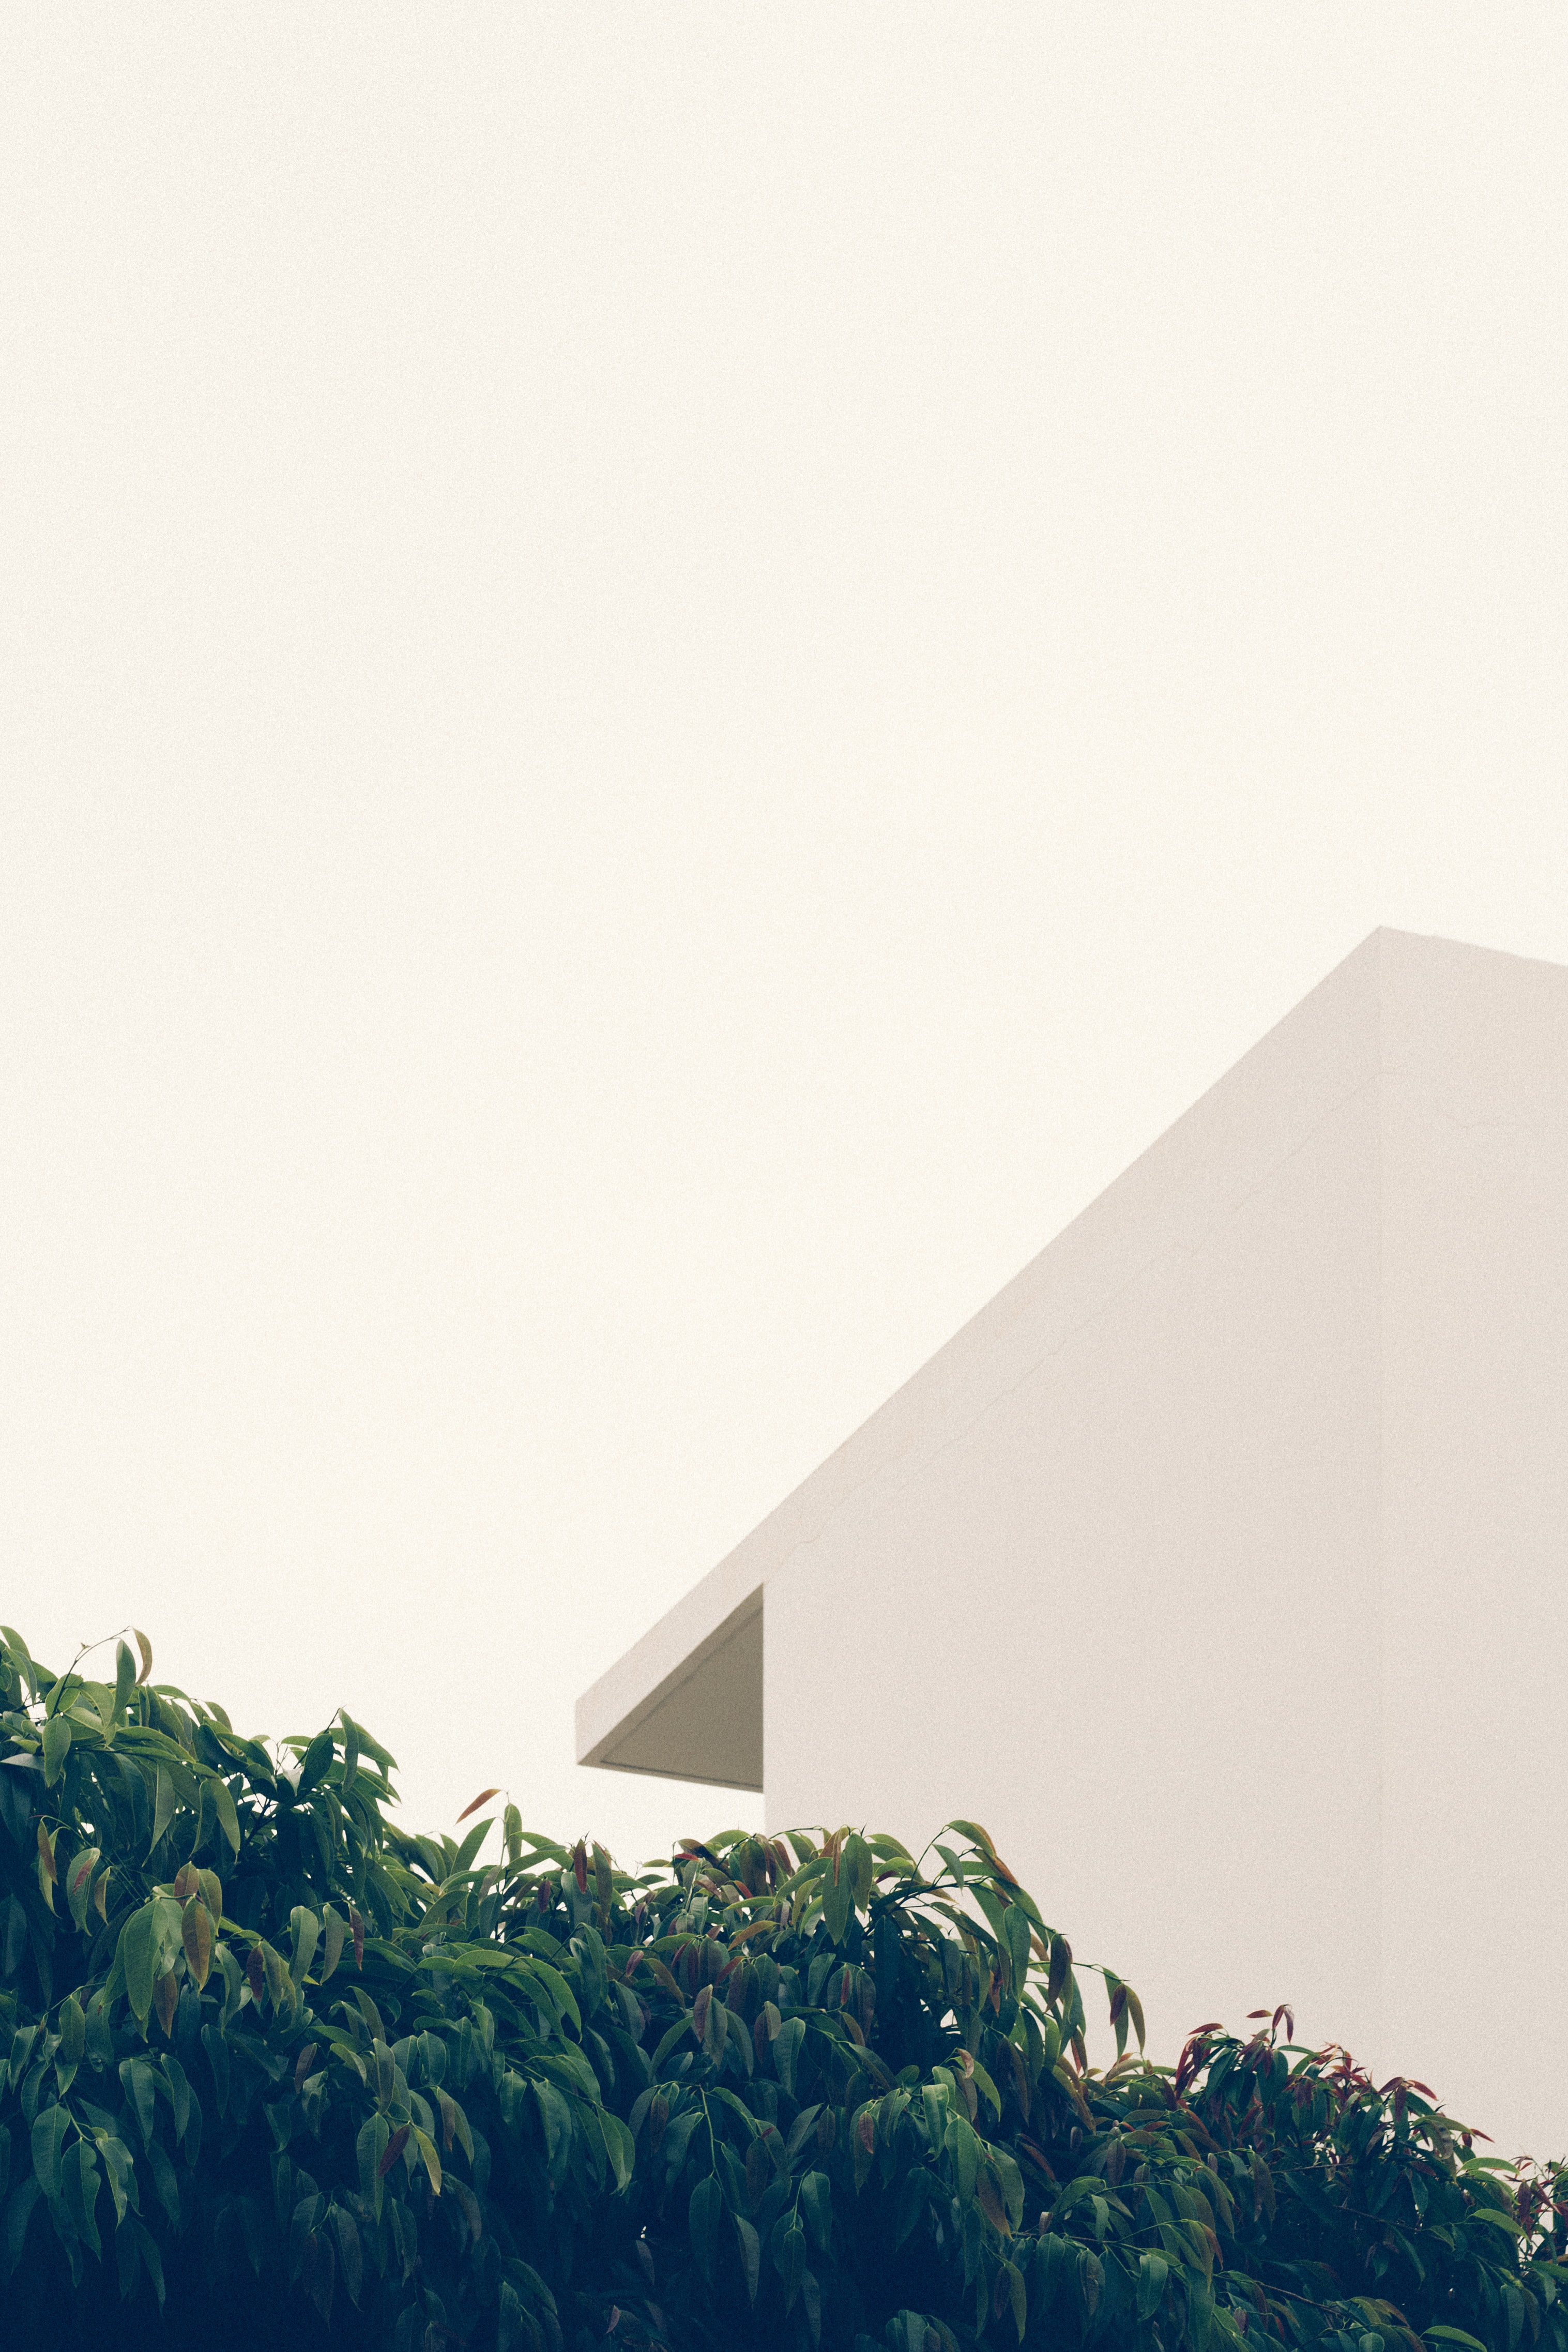 green leafed tree beside white concrete building